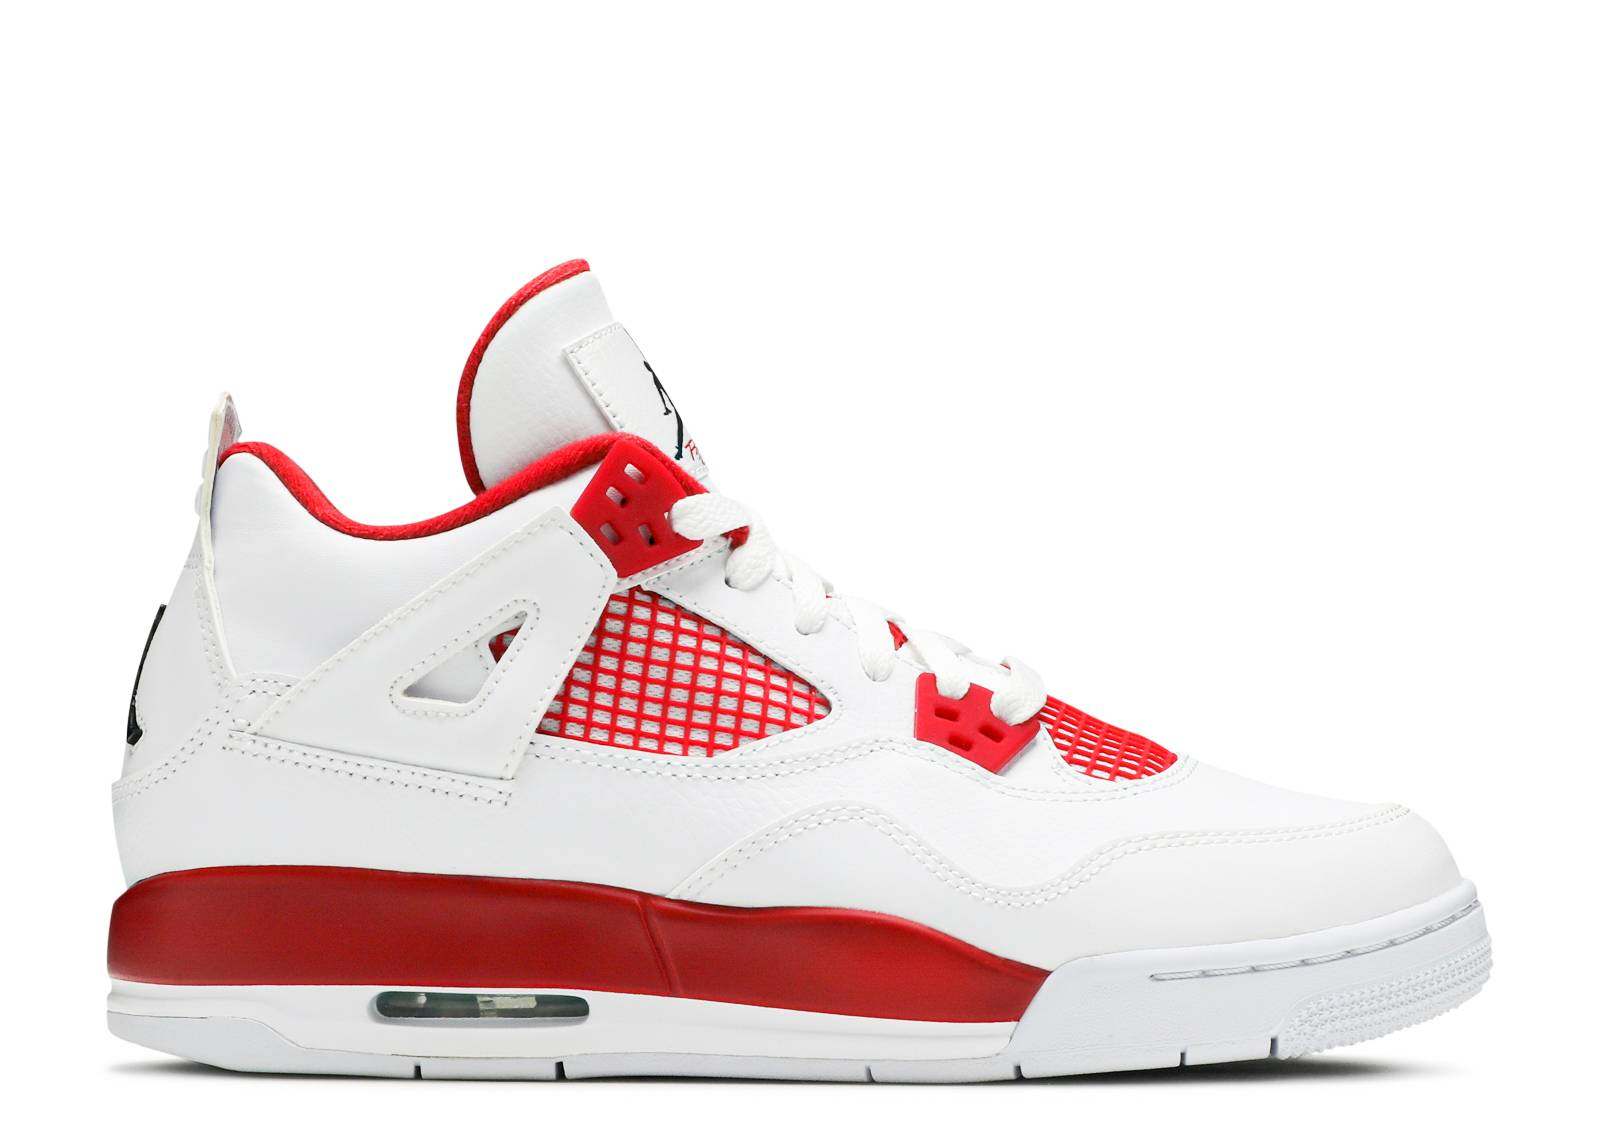 Air Jordan 4 Retro Blanc Bg  / Noir  / Gym Robin Rouge